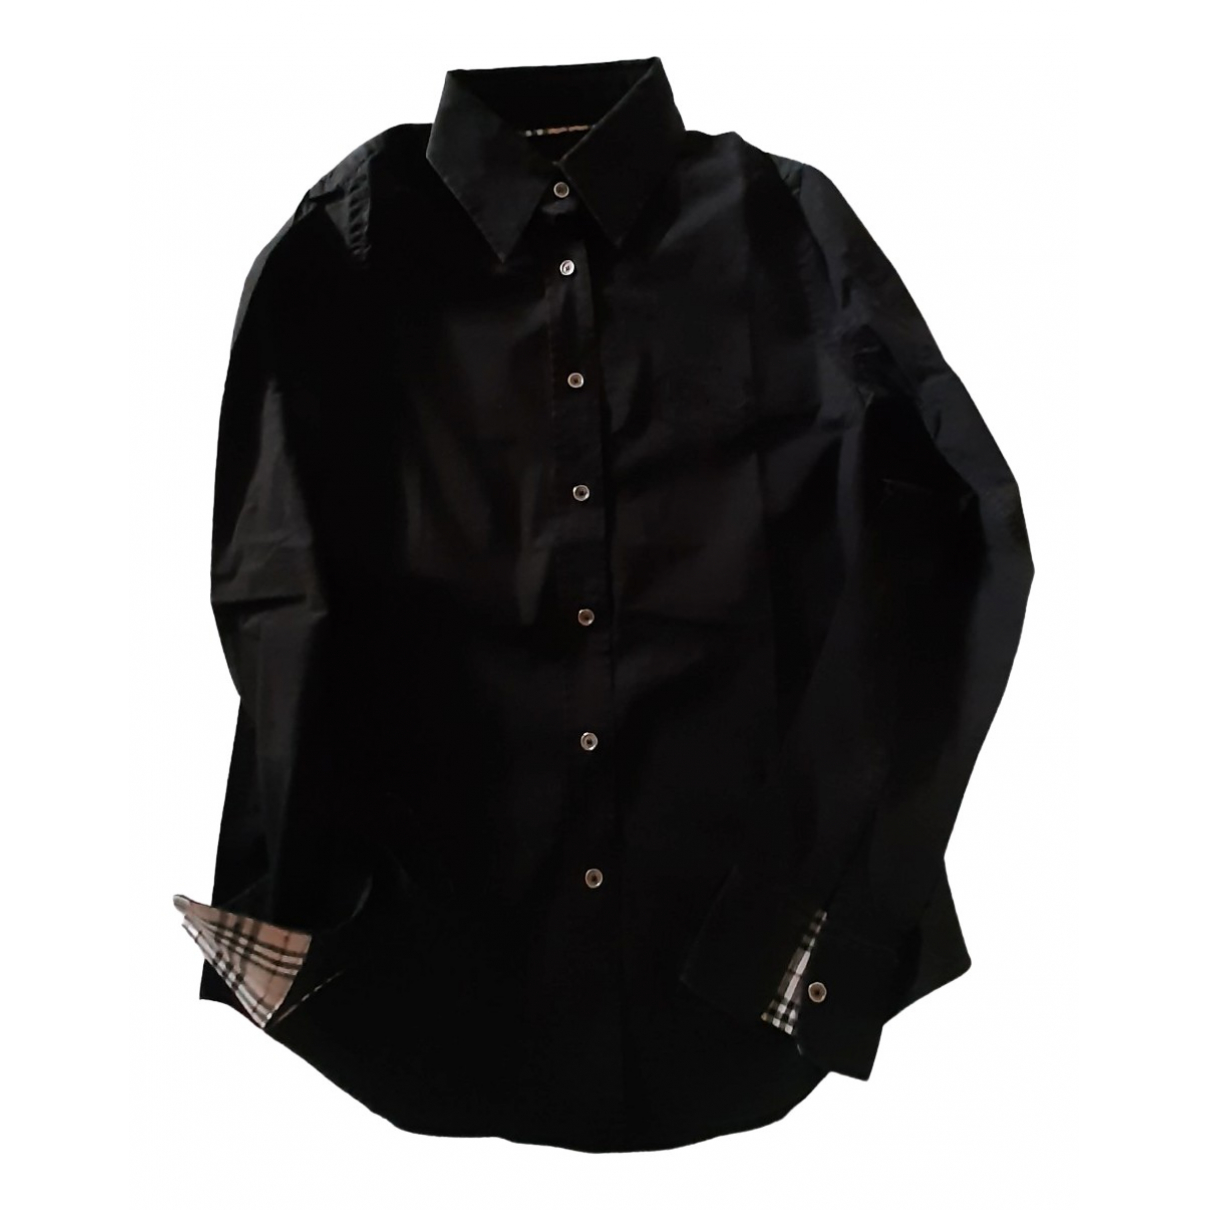 Burberry \N Black Cotton  top for Women XS International